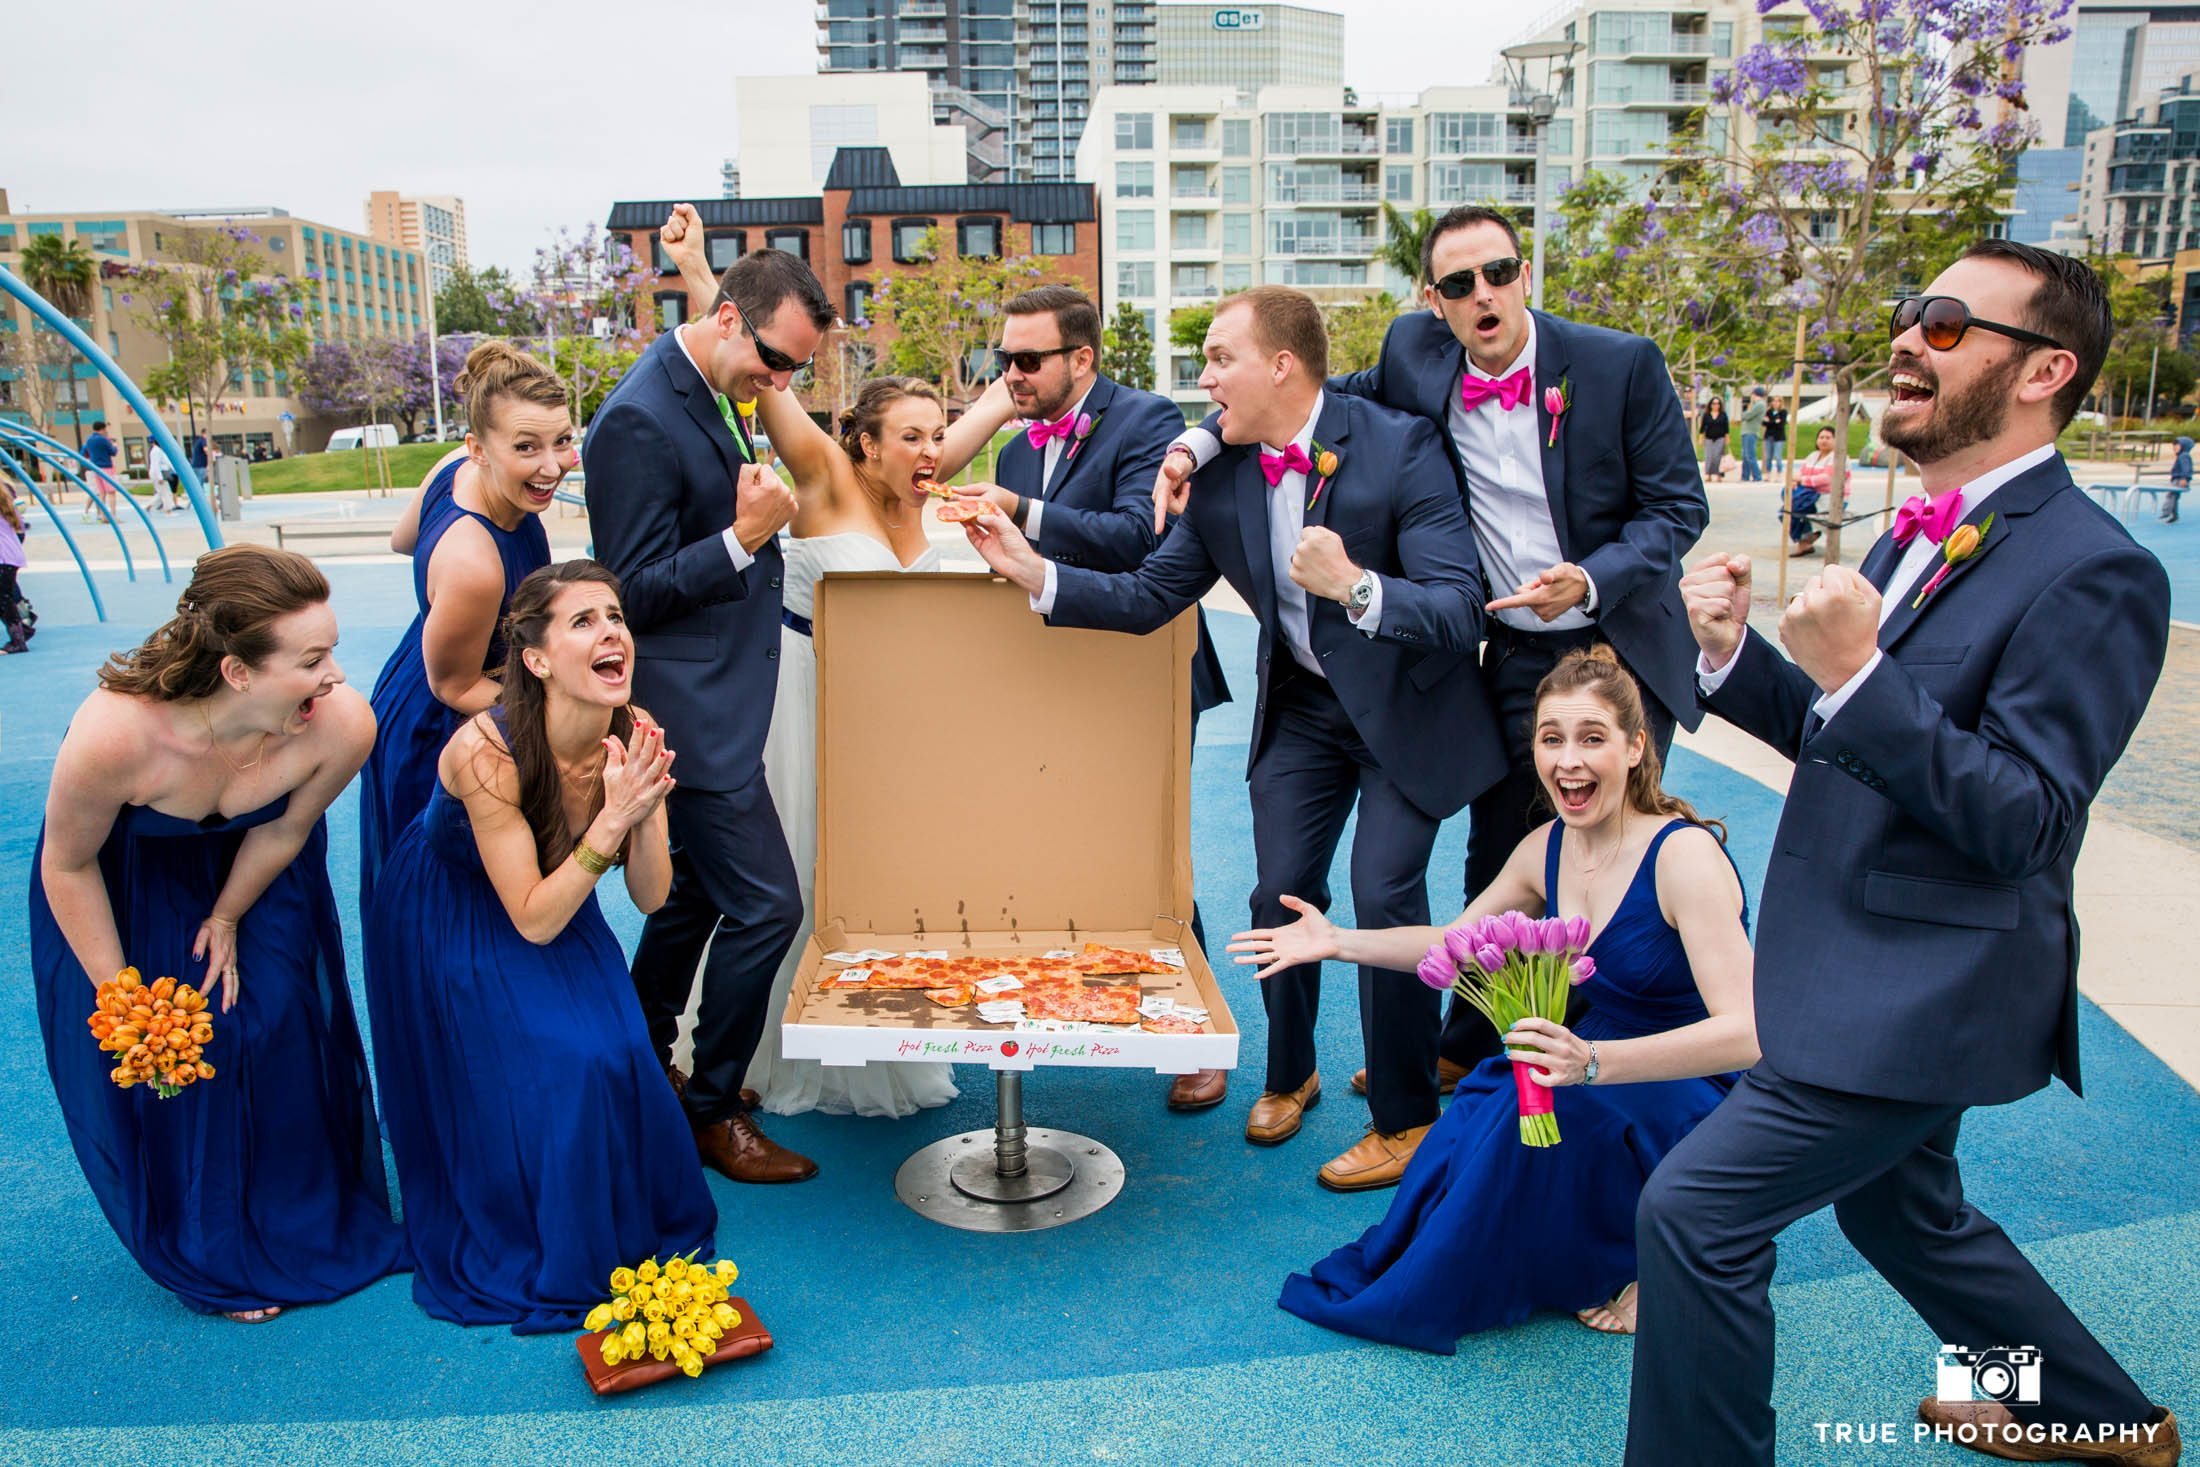 Silly wedding rarty scored a pizza